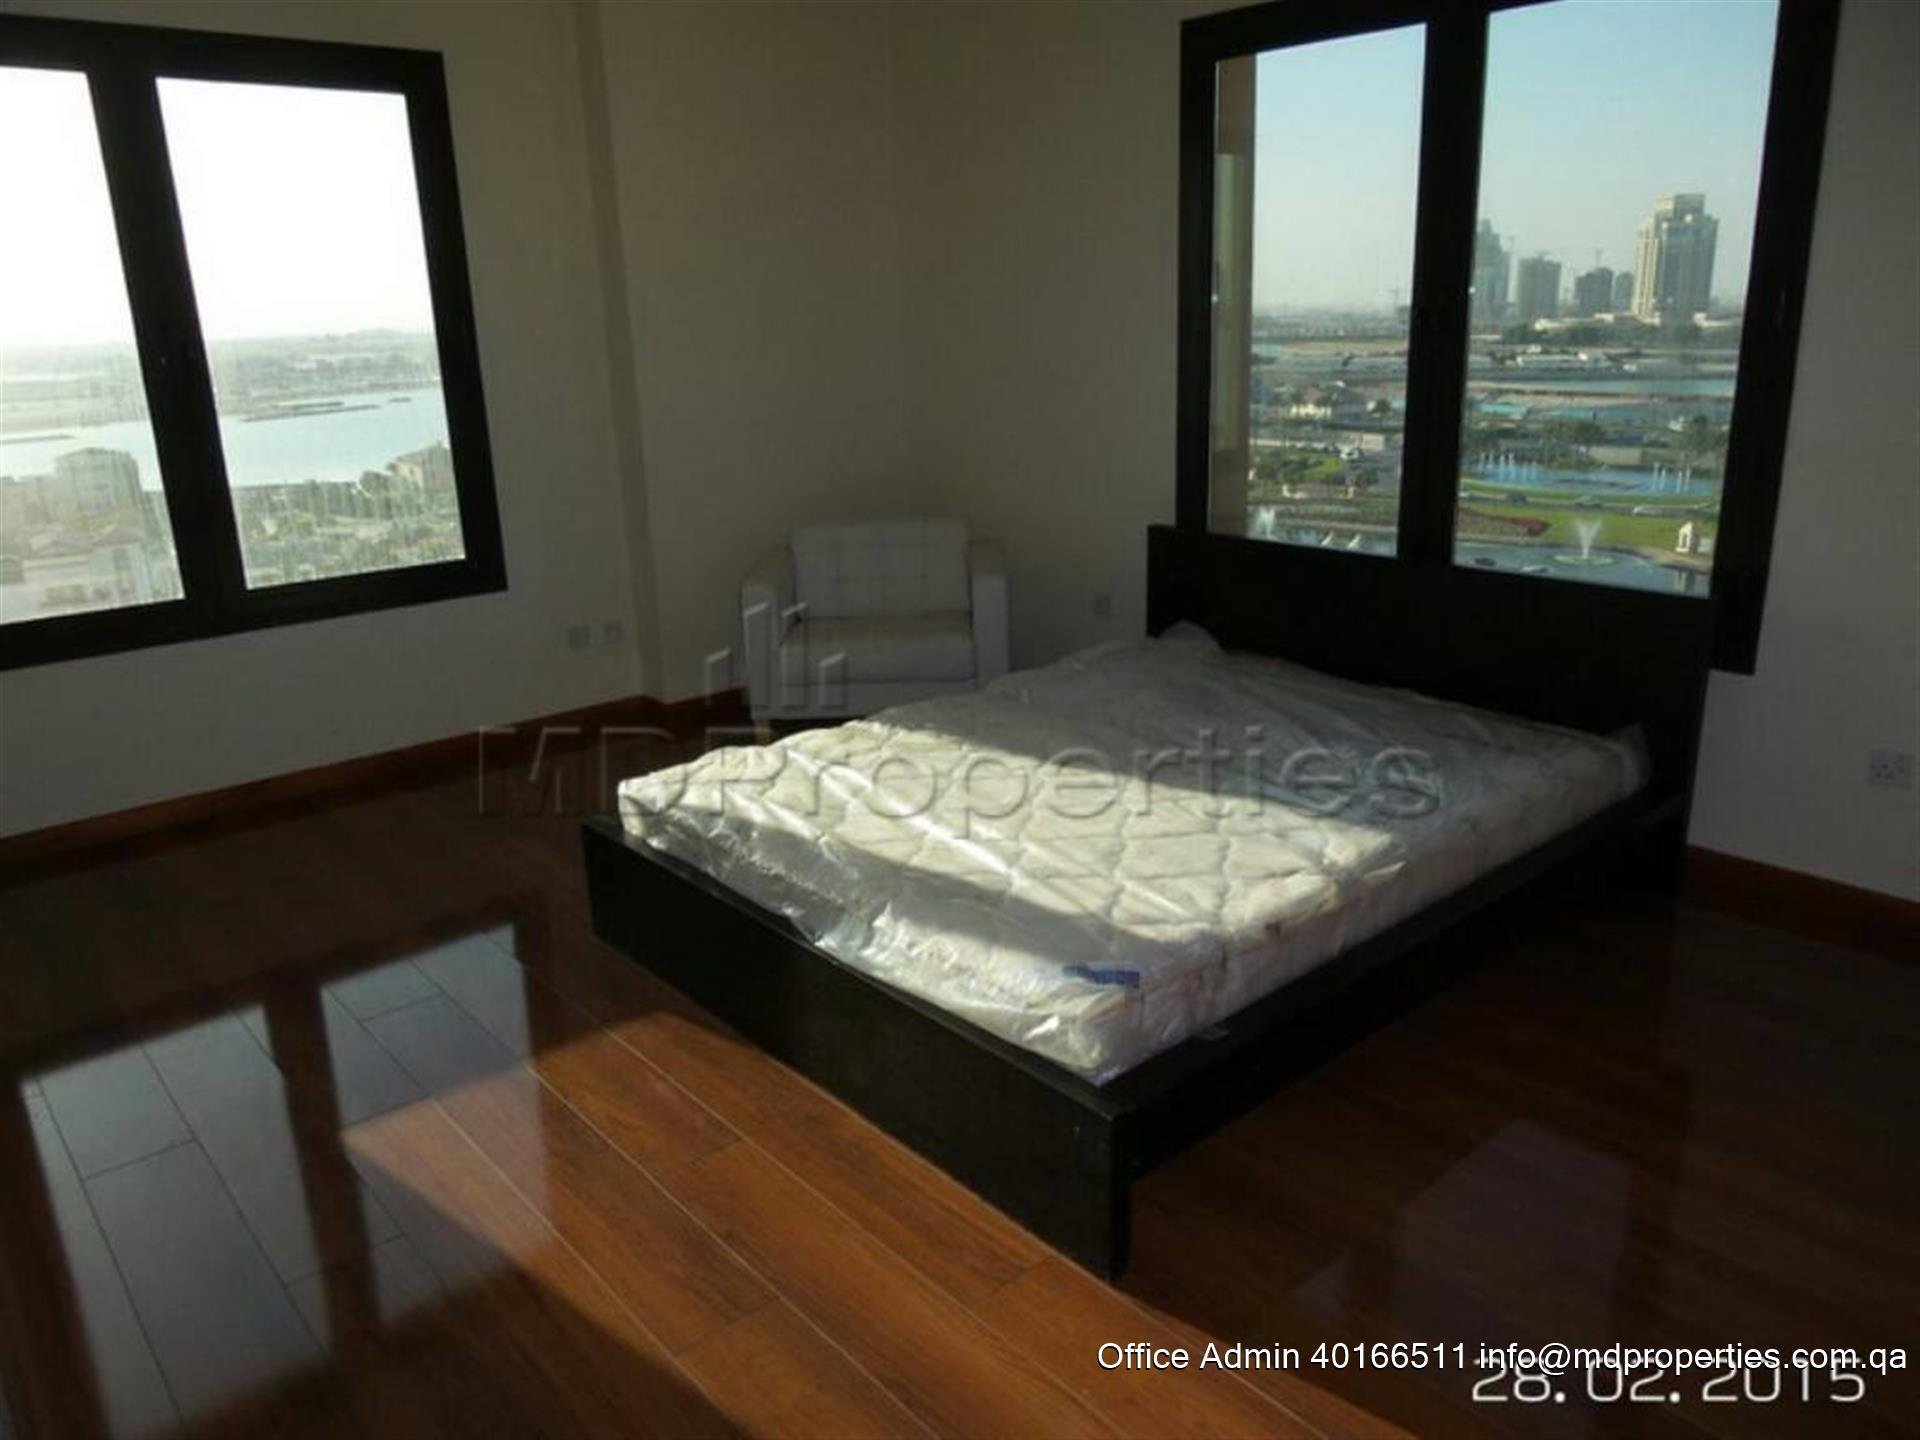 2 Bedroom Apartment For Rent In Doha 28 Images Qatar Apartment For Rent In Doha Qar 16 000